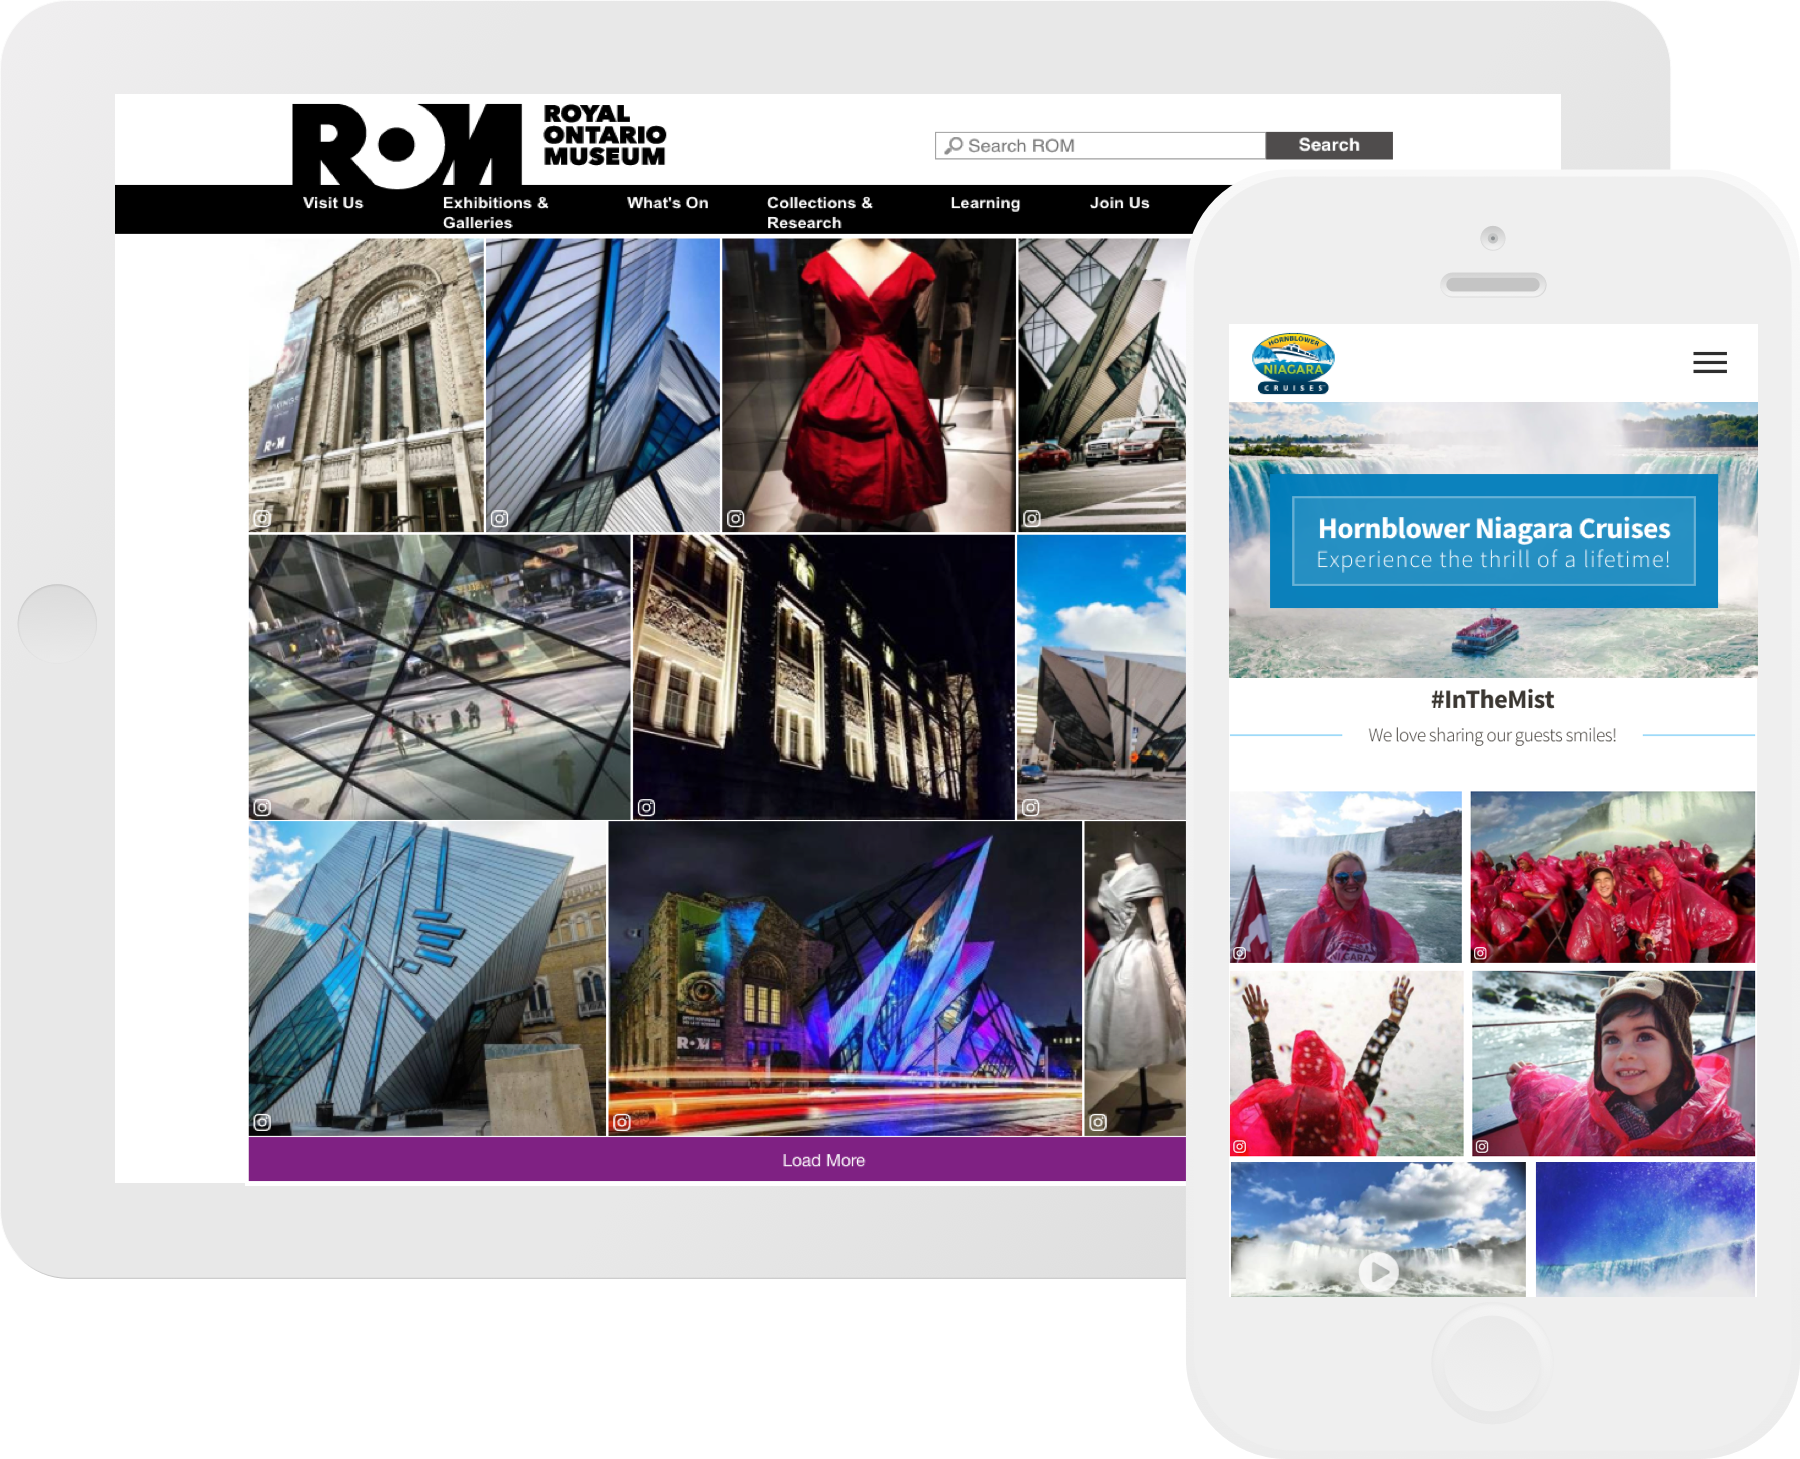 CrowdRiff responsive galleries on ROM website and Hornblower Niagara Cruises website